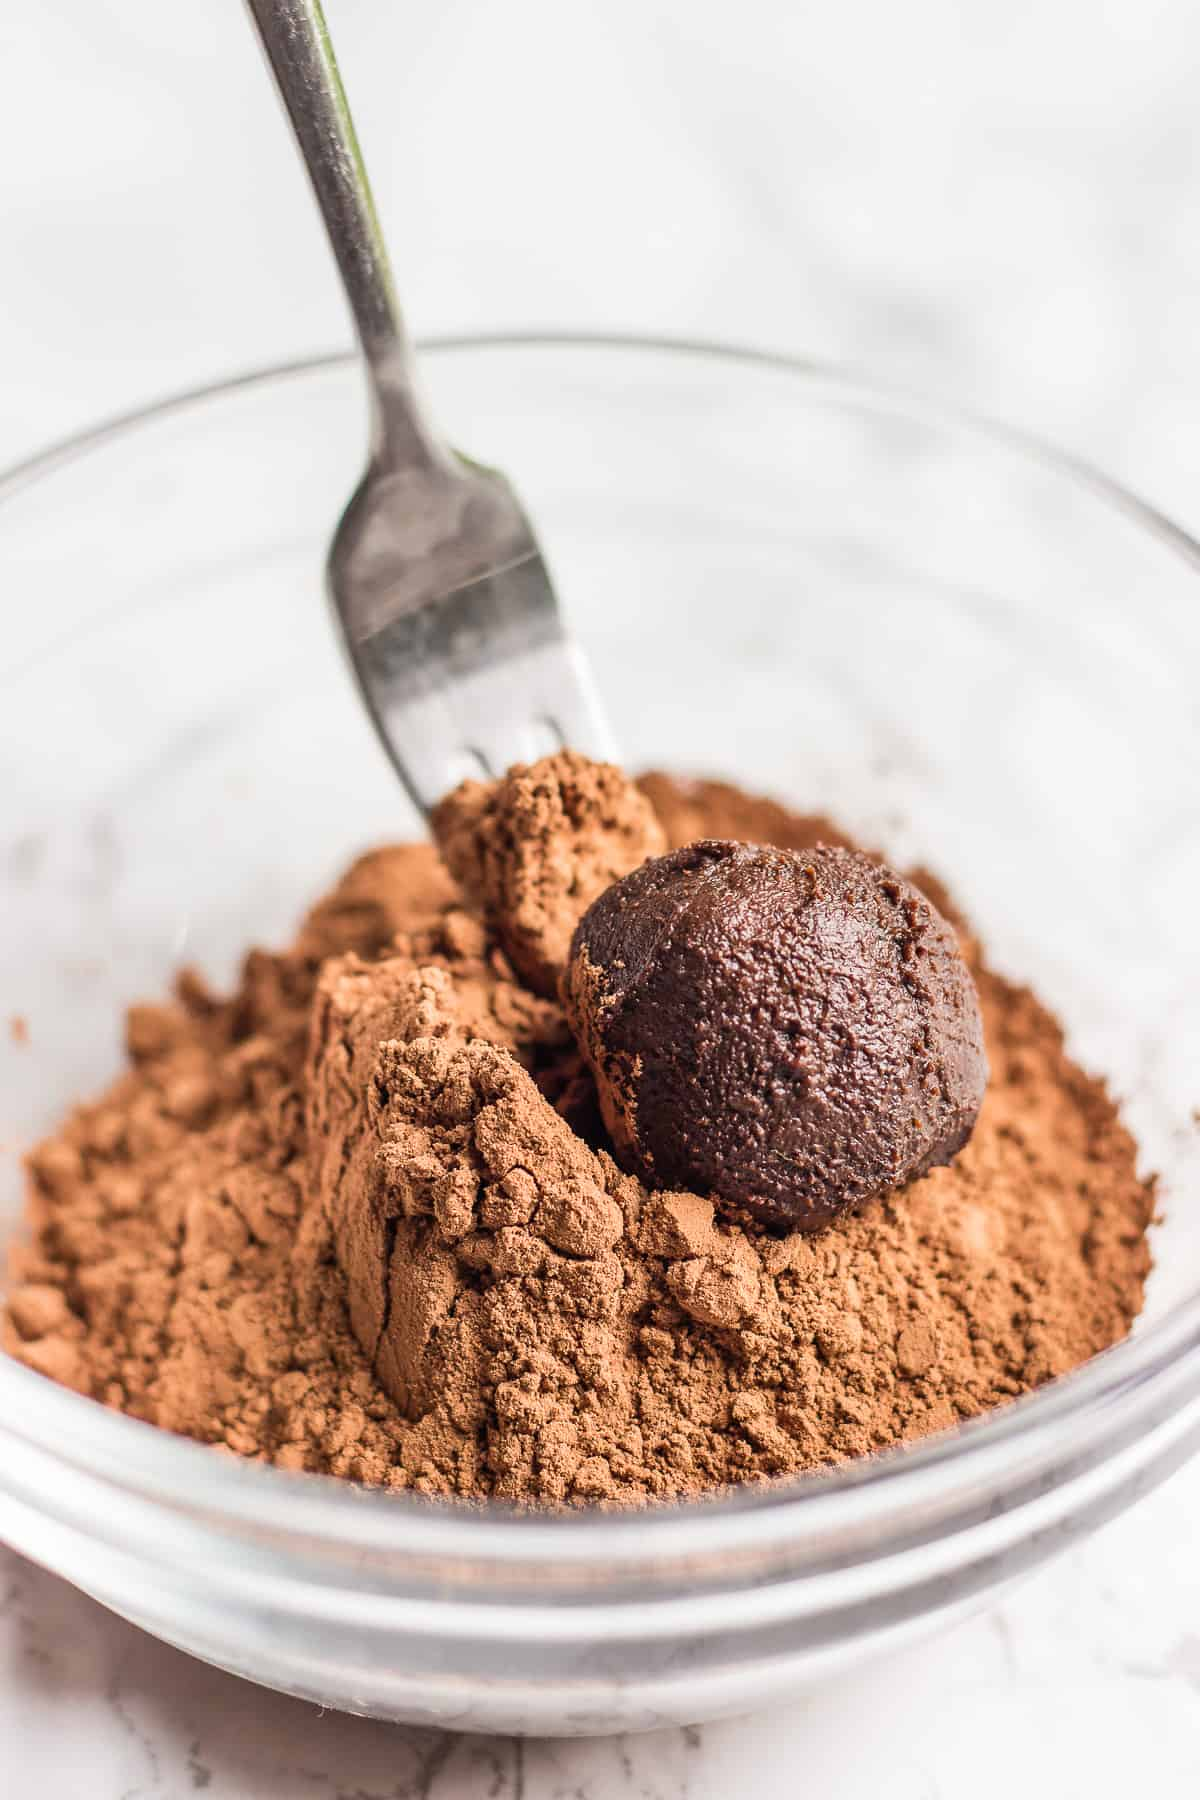 Coating avocado truffles in cacao powder